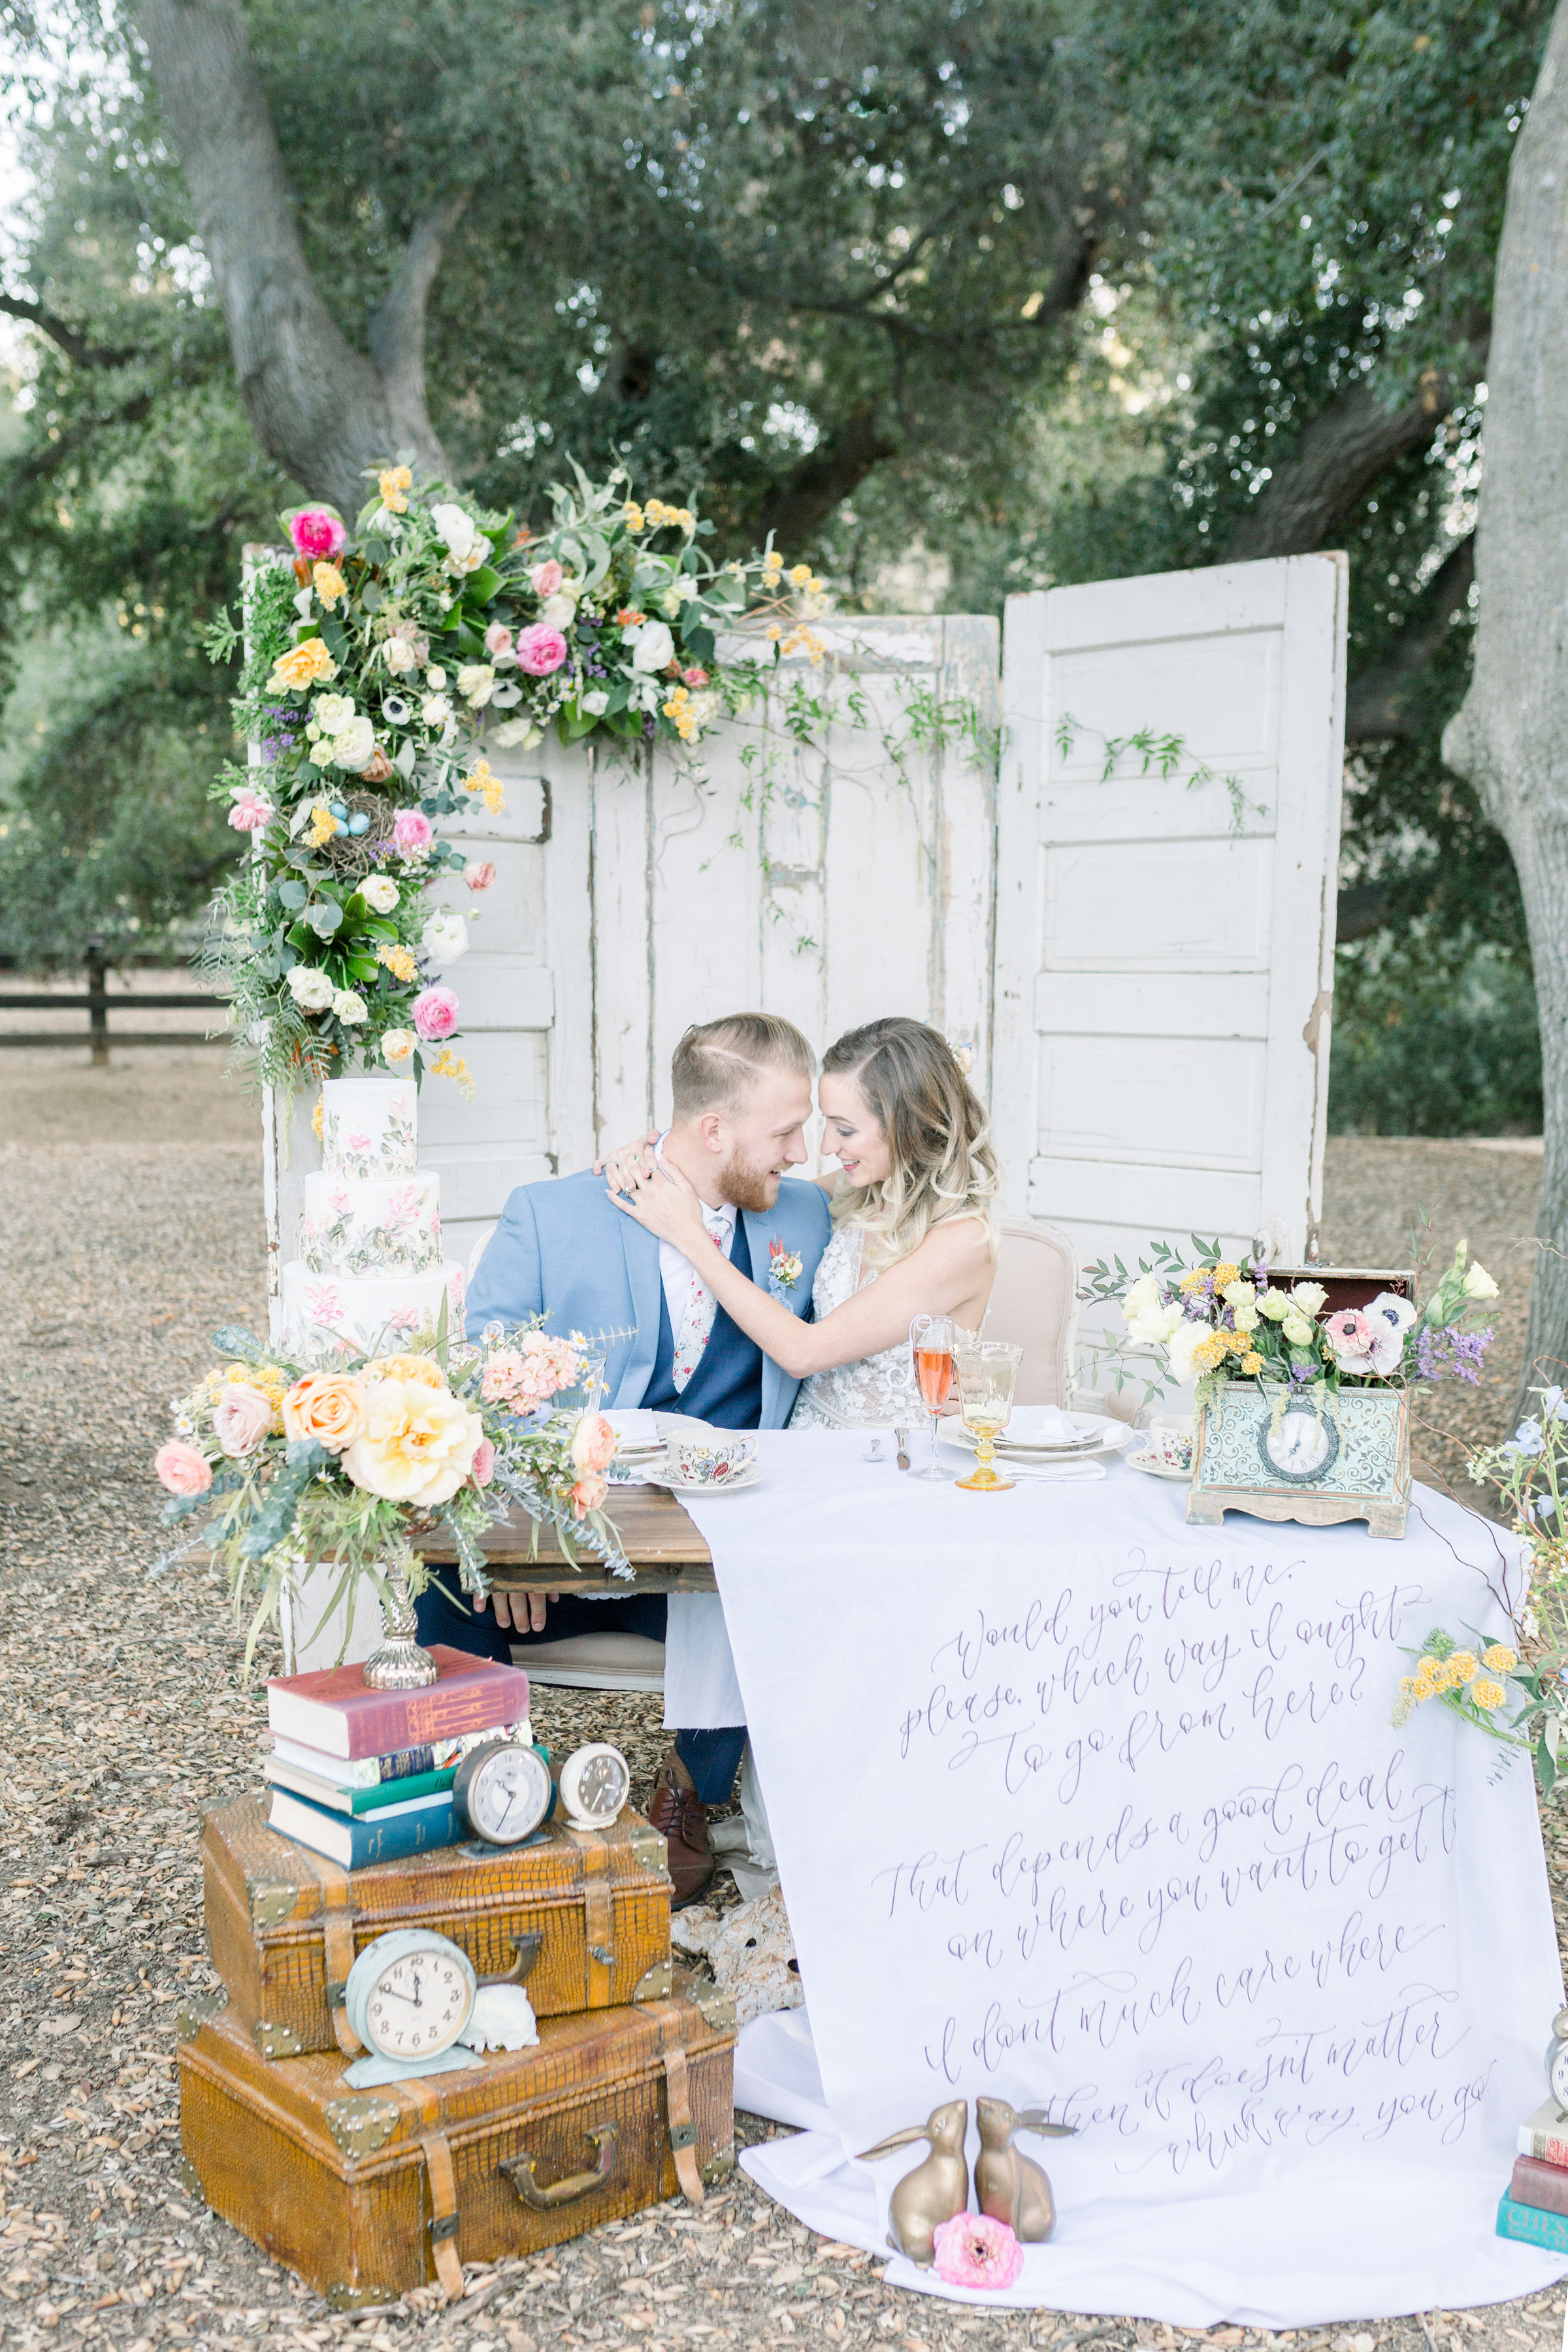 StephanieWeberPhotography-Alice-in-Wonderland-garden-wedding-reception-decor-sweetheart-table-with-fabric-sign-quote